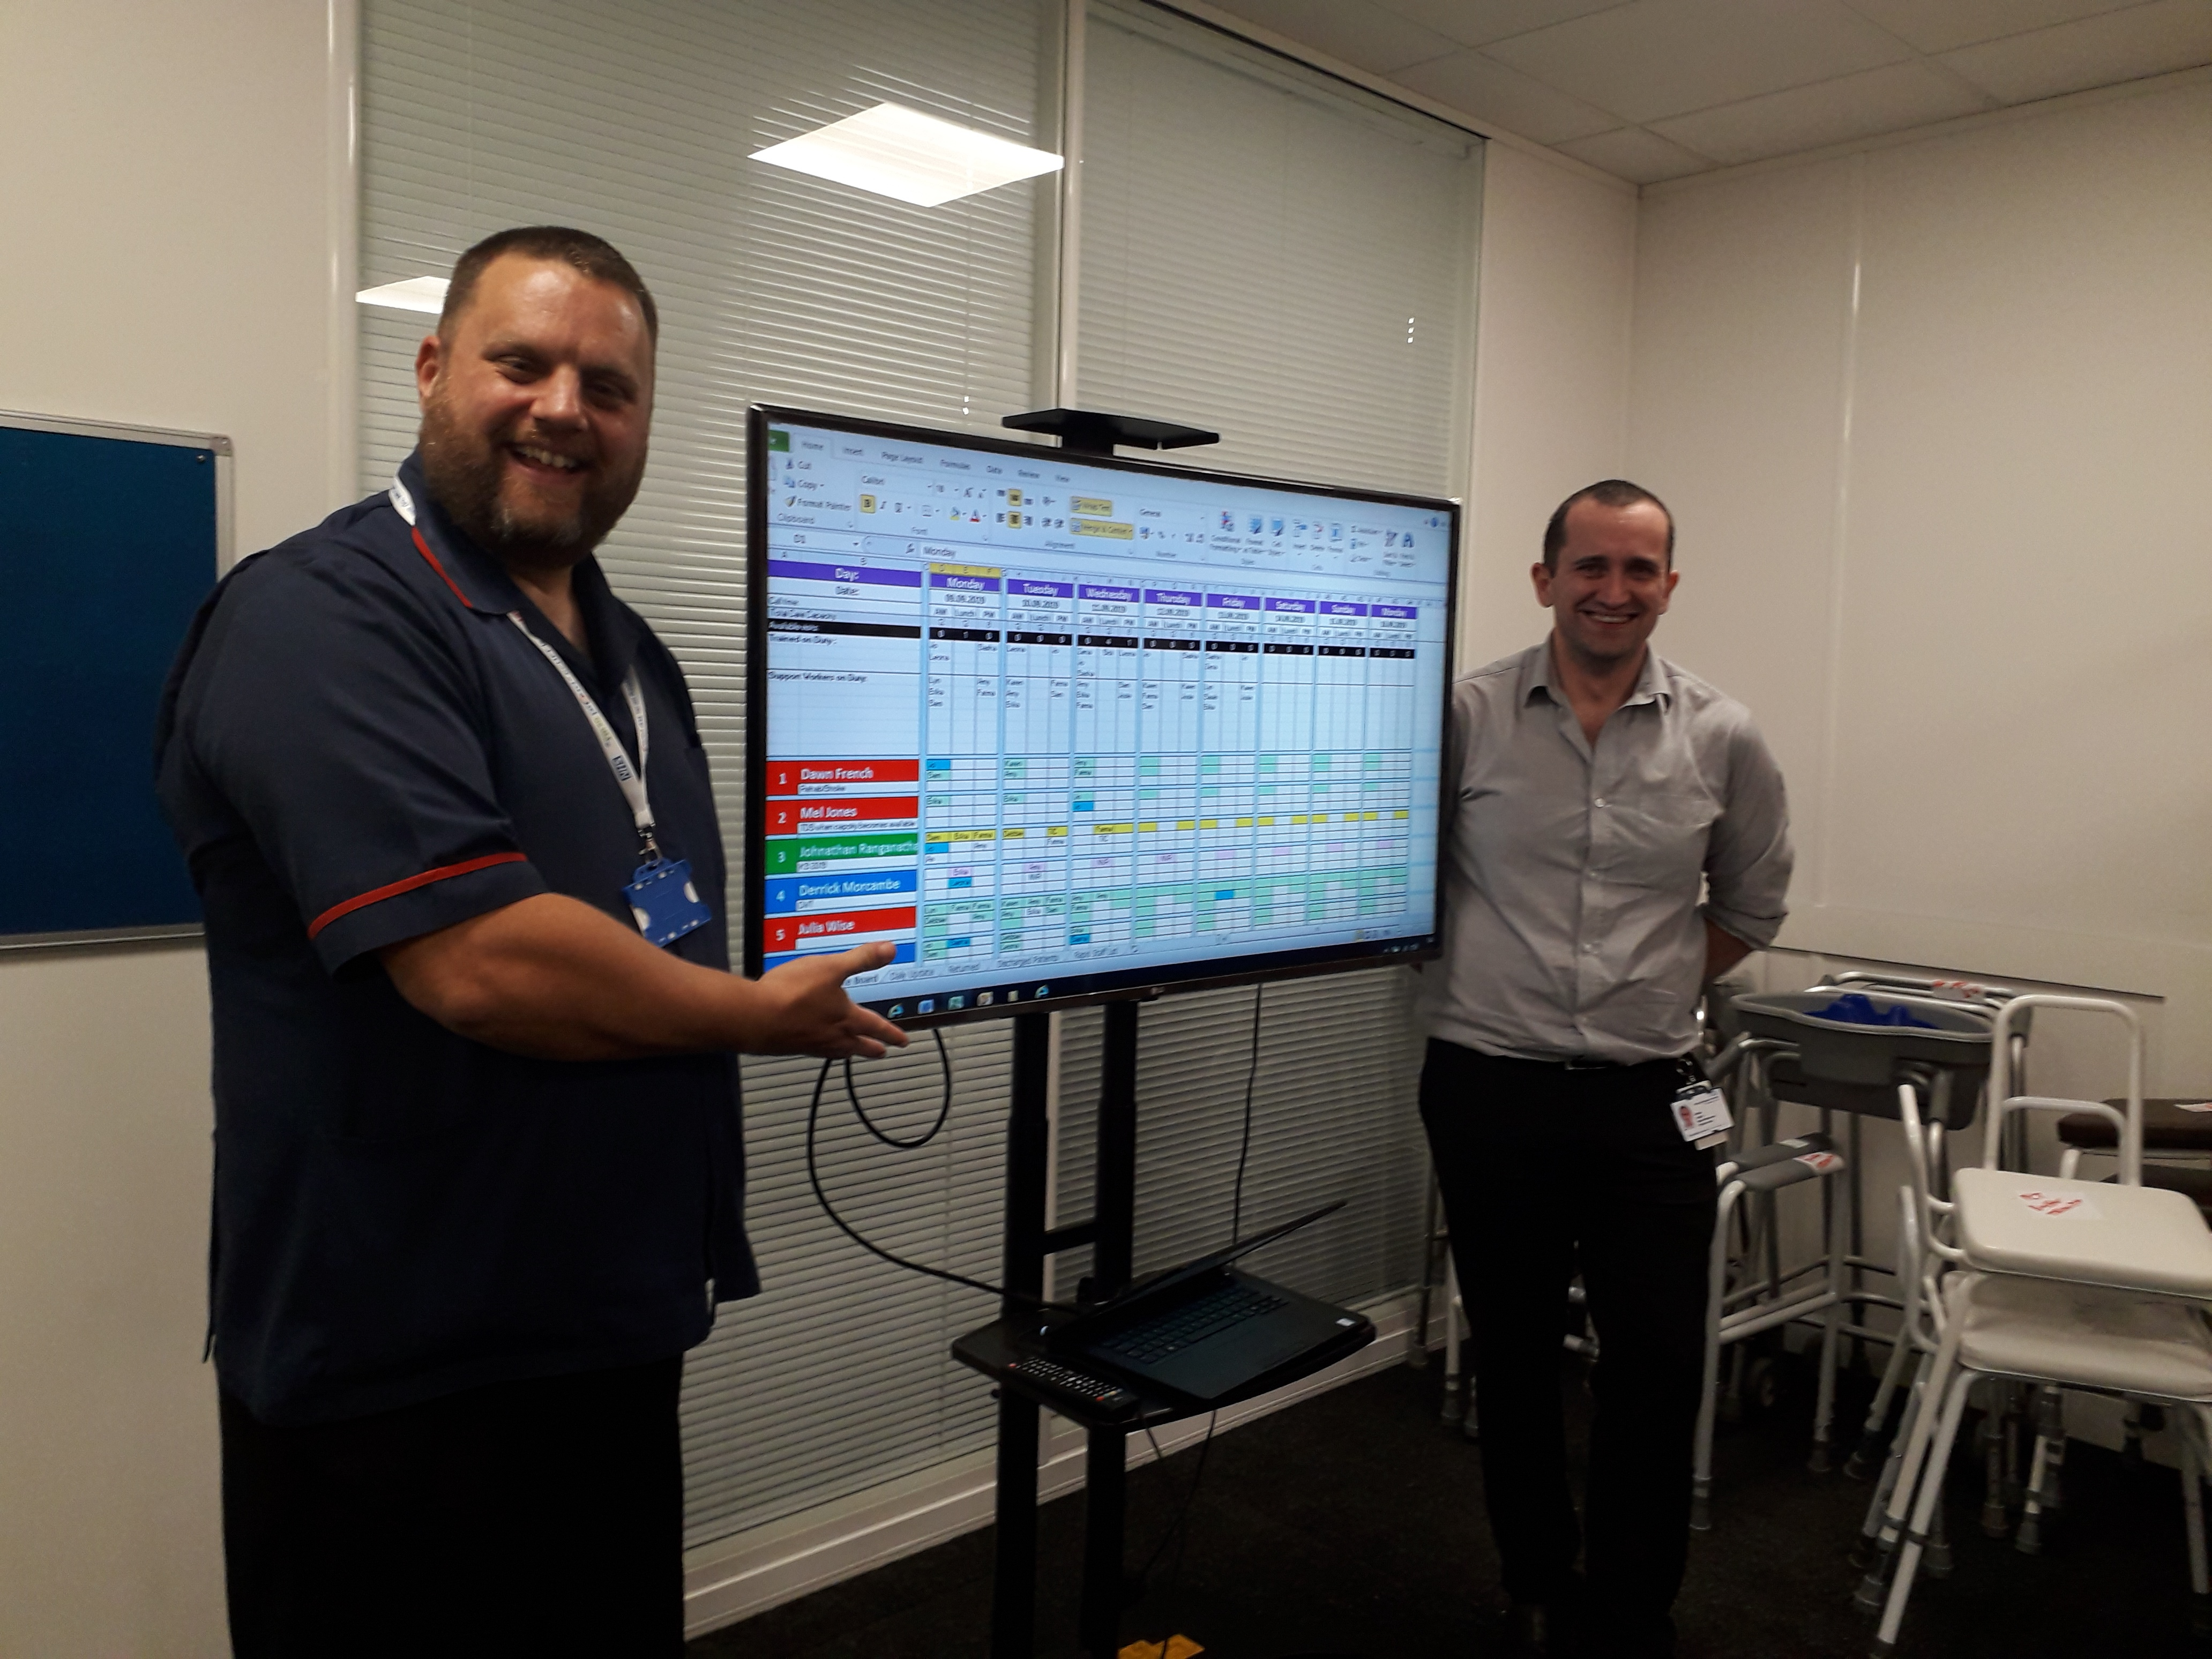 Dan Westland (left) and Owen Leach (right) with an example digital whiteboard